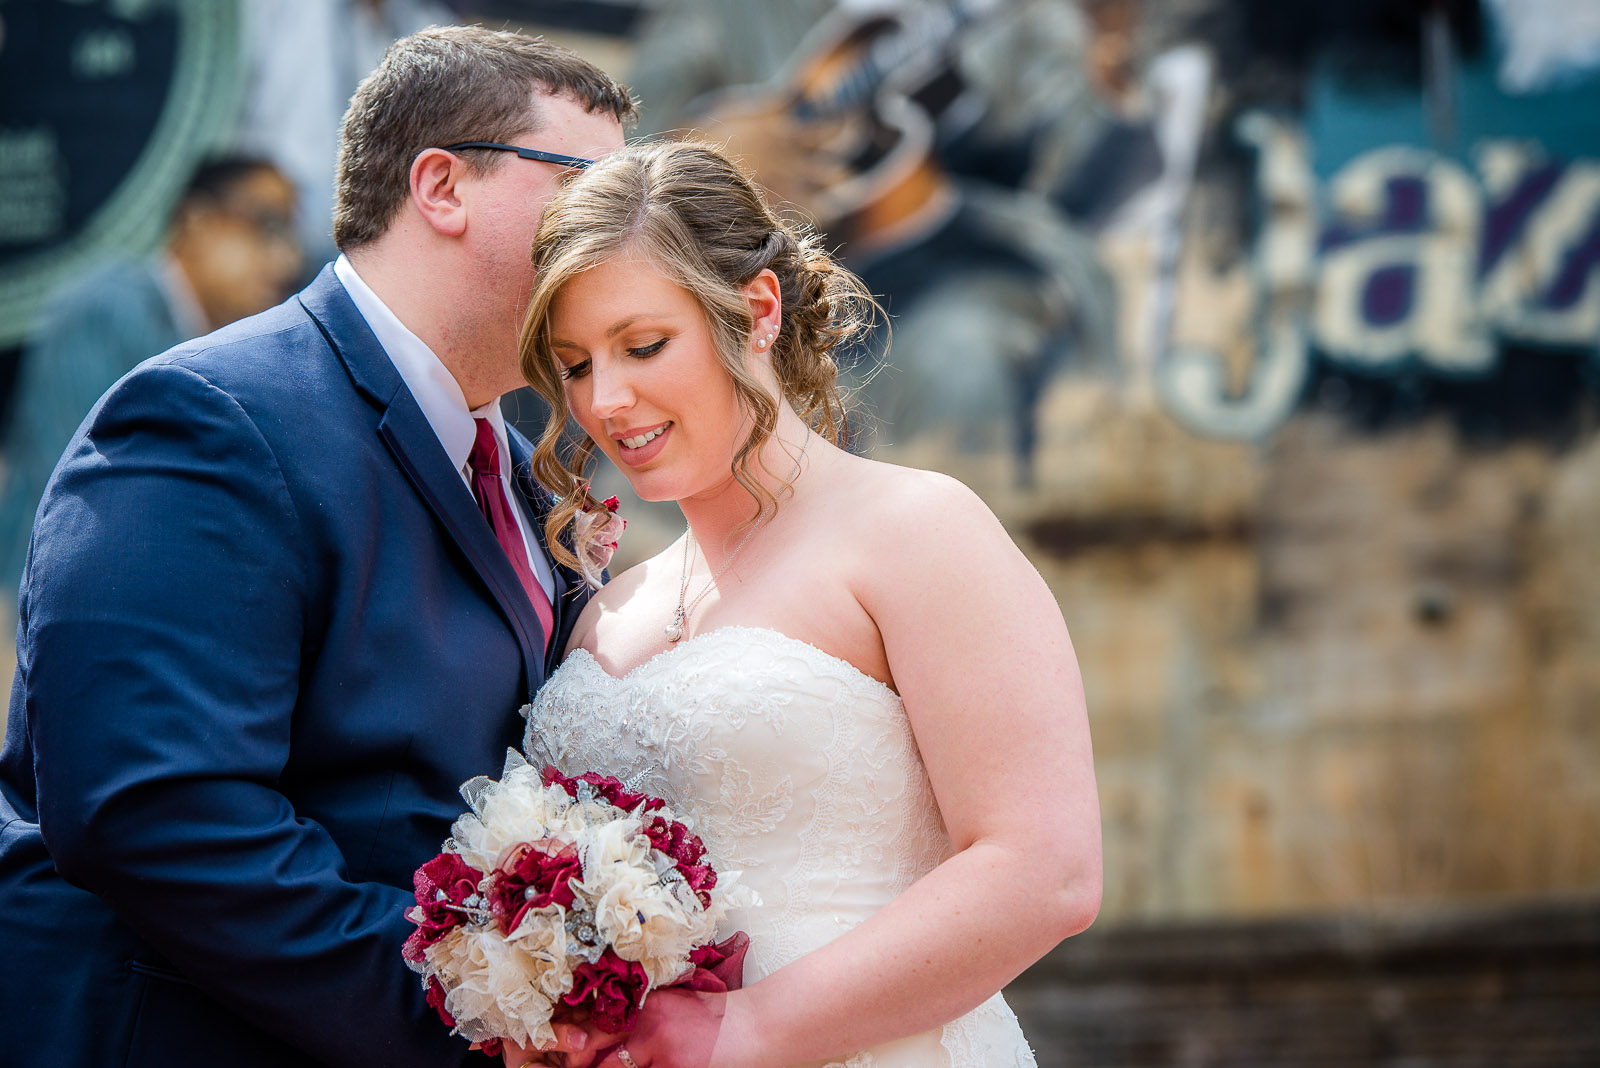 Eric_and_Christy_Photography_Blog_2018_Portraits-34